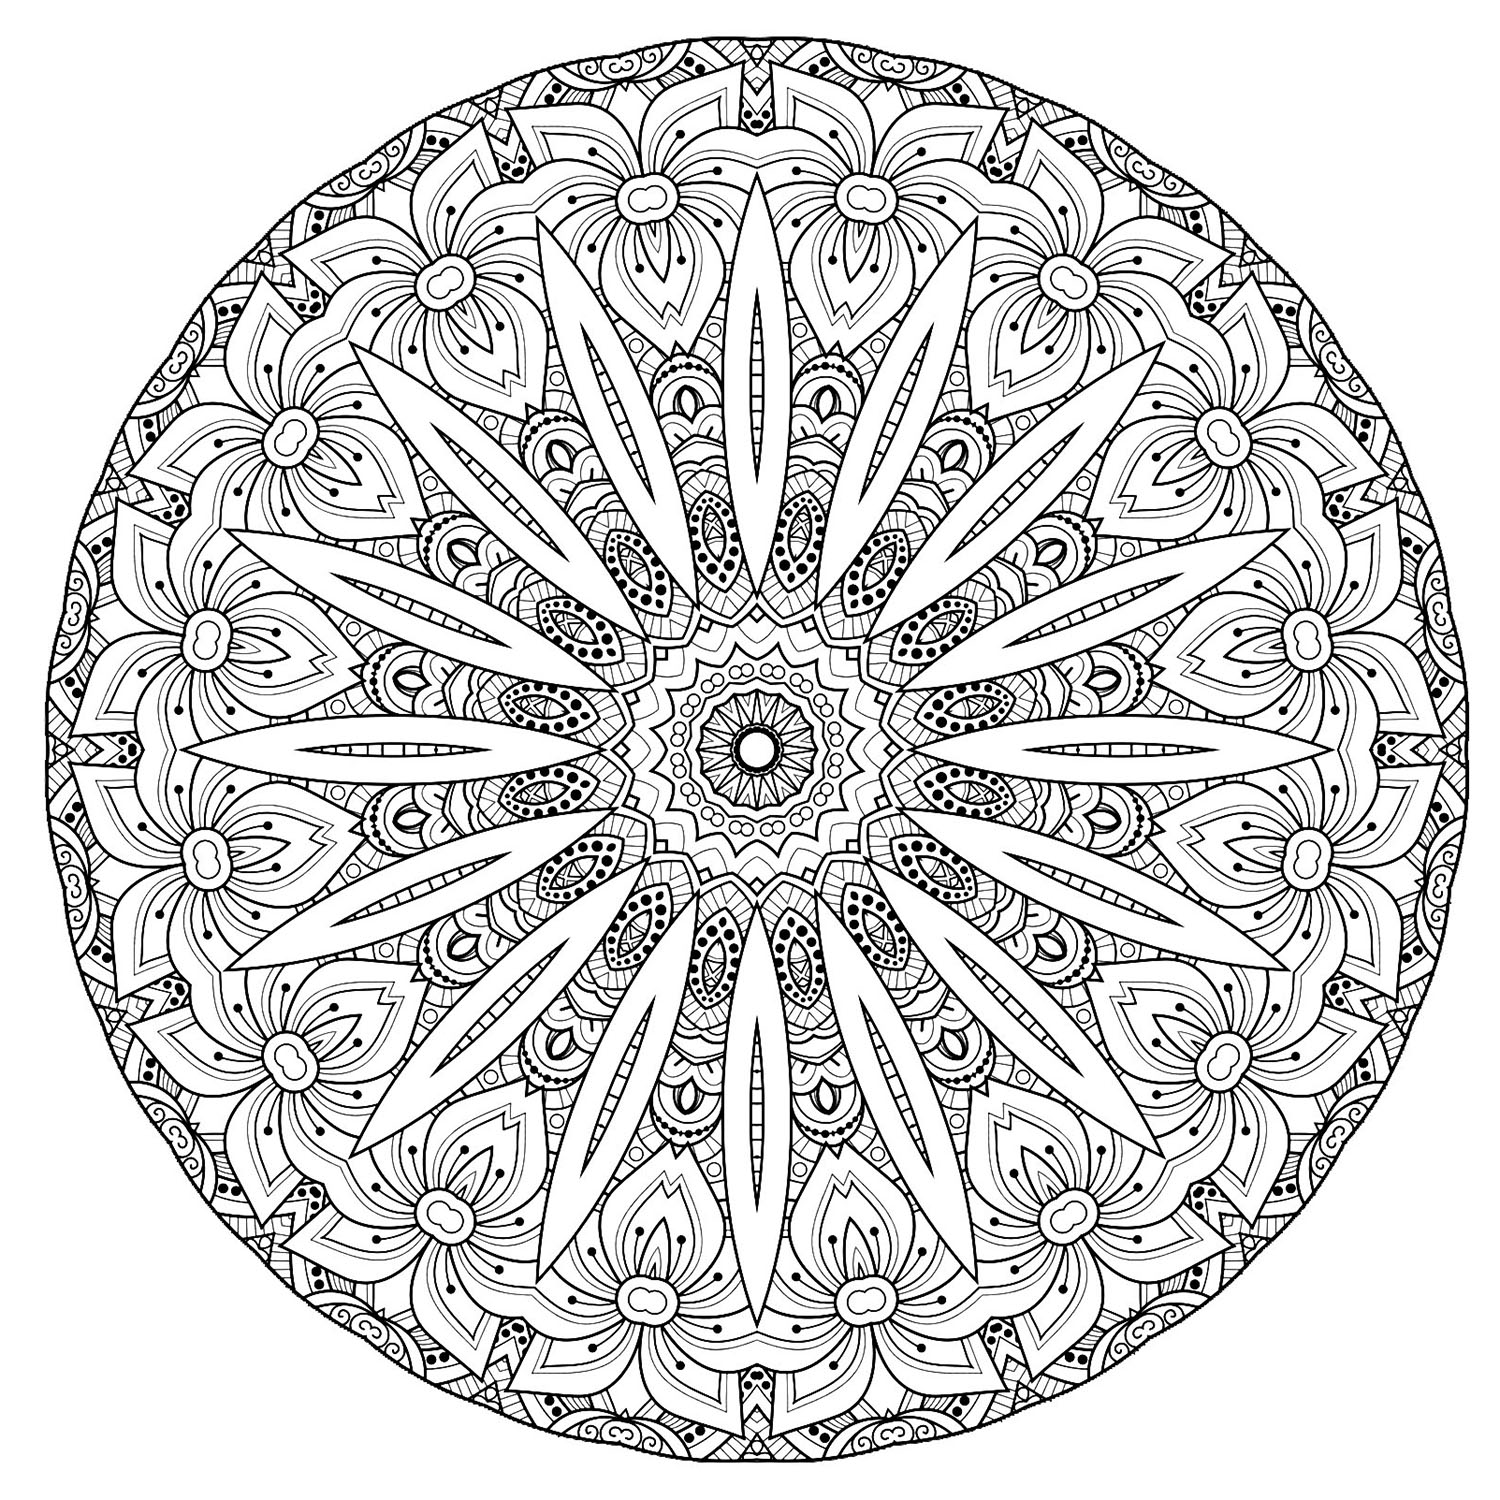 A luxuriant vegetation invades this giant Mandala with complex patterns. Give it life without delay. Do whatever it takes to get rid of any distractions that may interfere with your coloring.